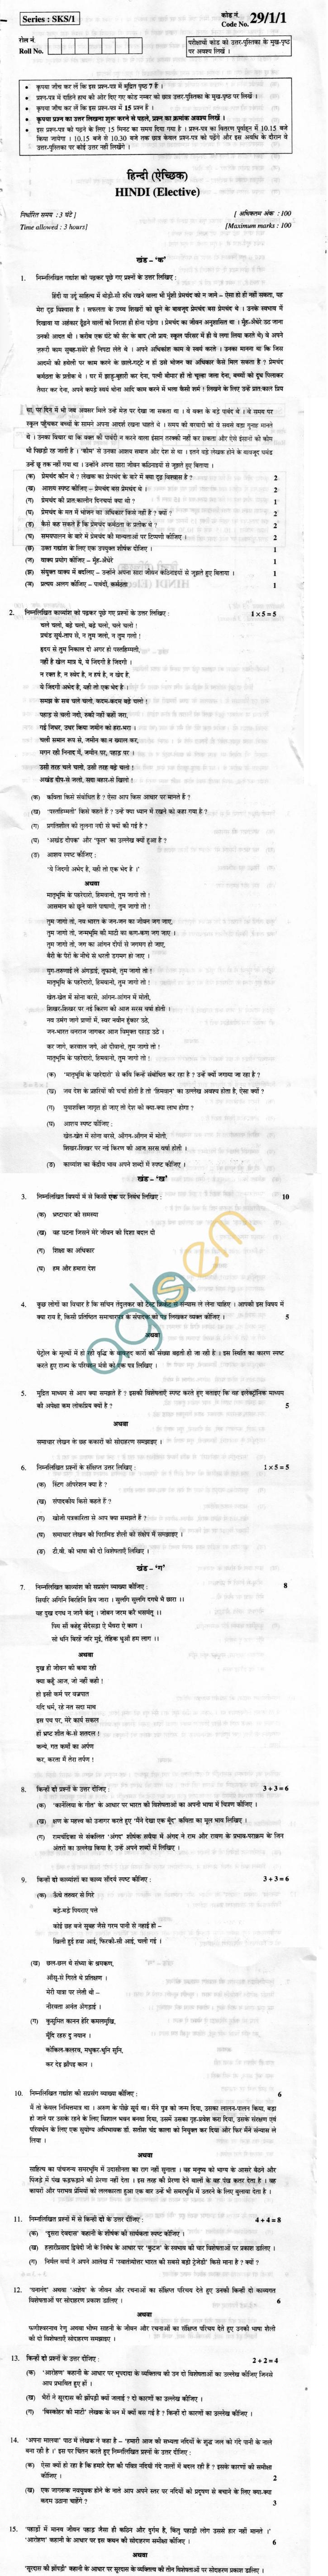 CBSE Board Exam 2013 Class XII Question Paper - Hindi (Elective)